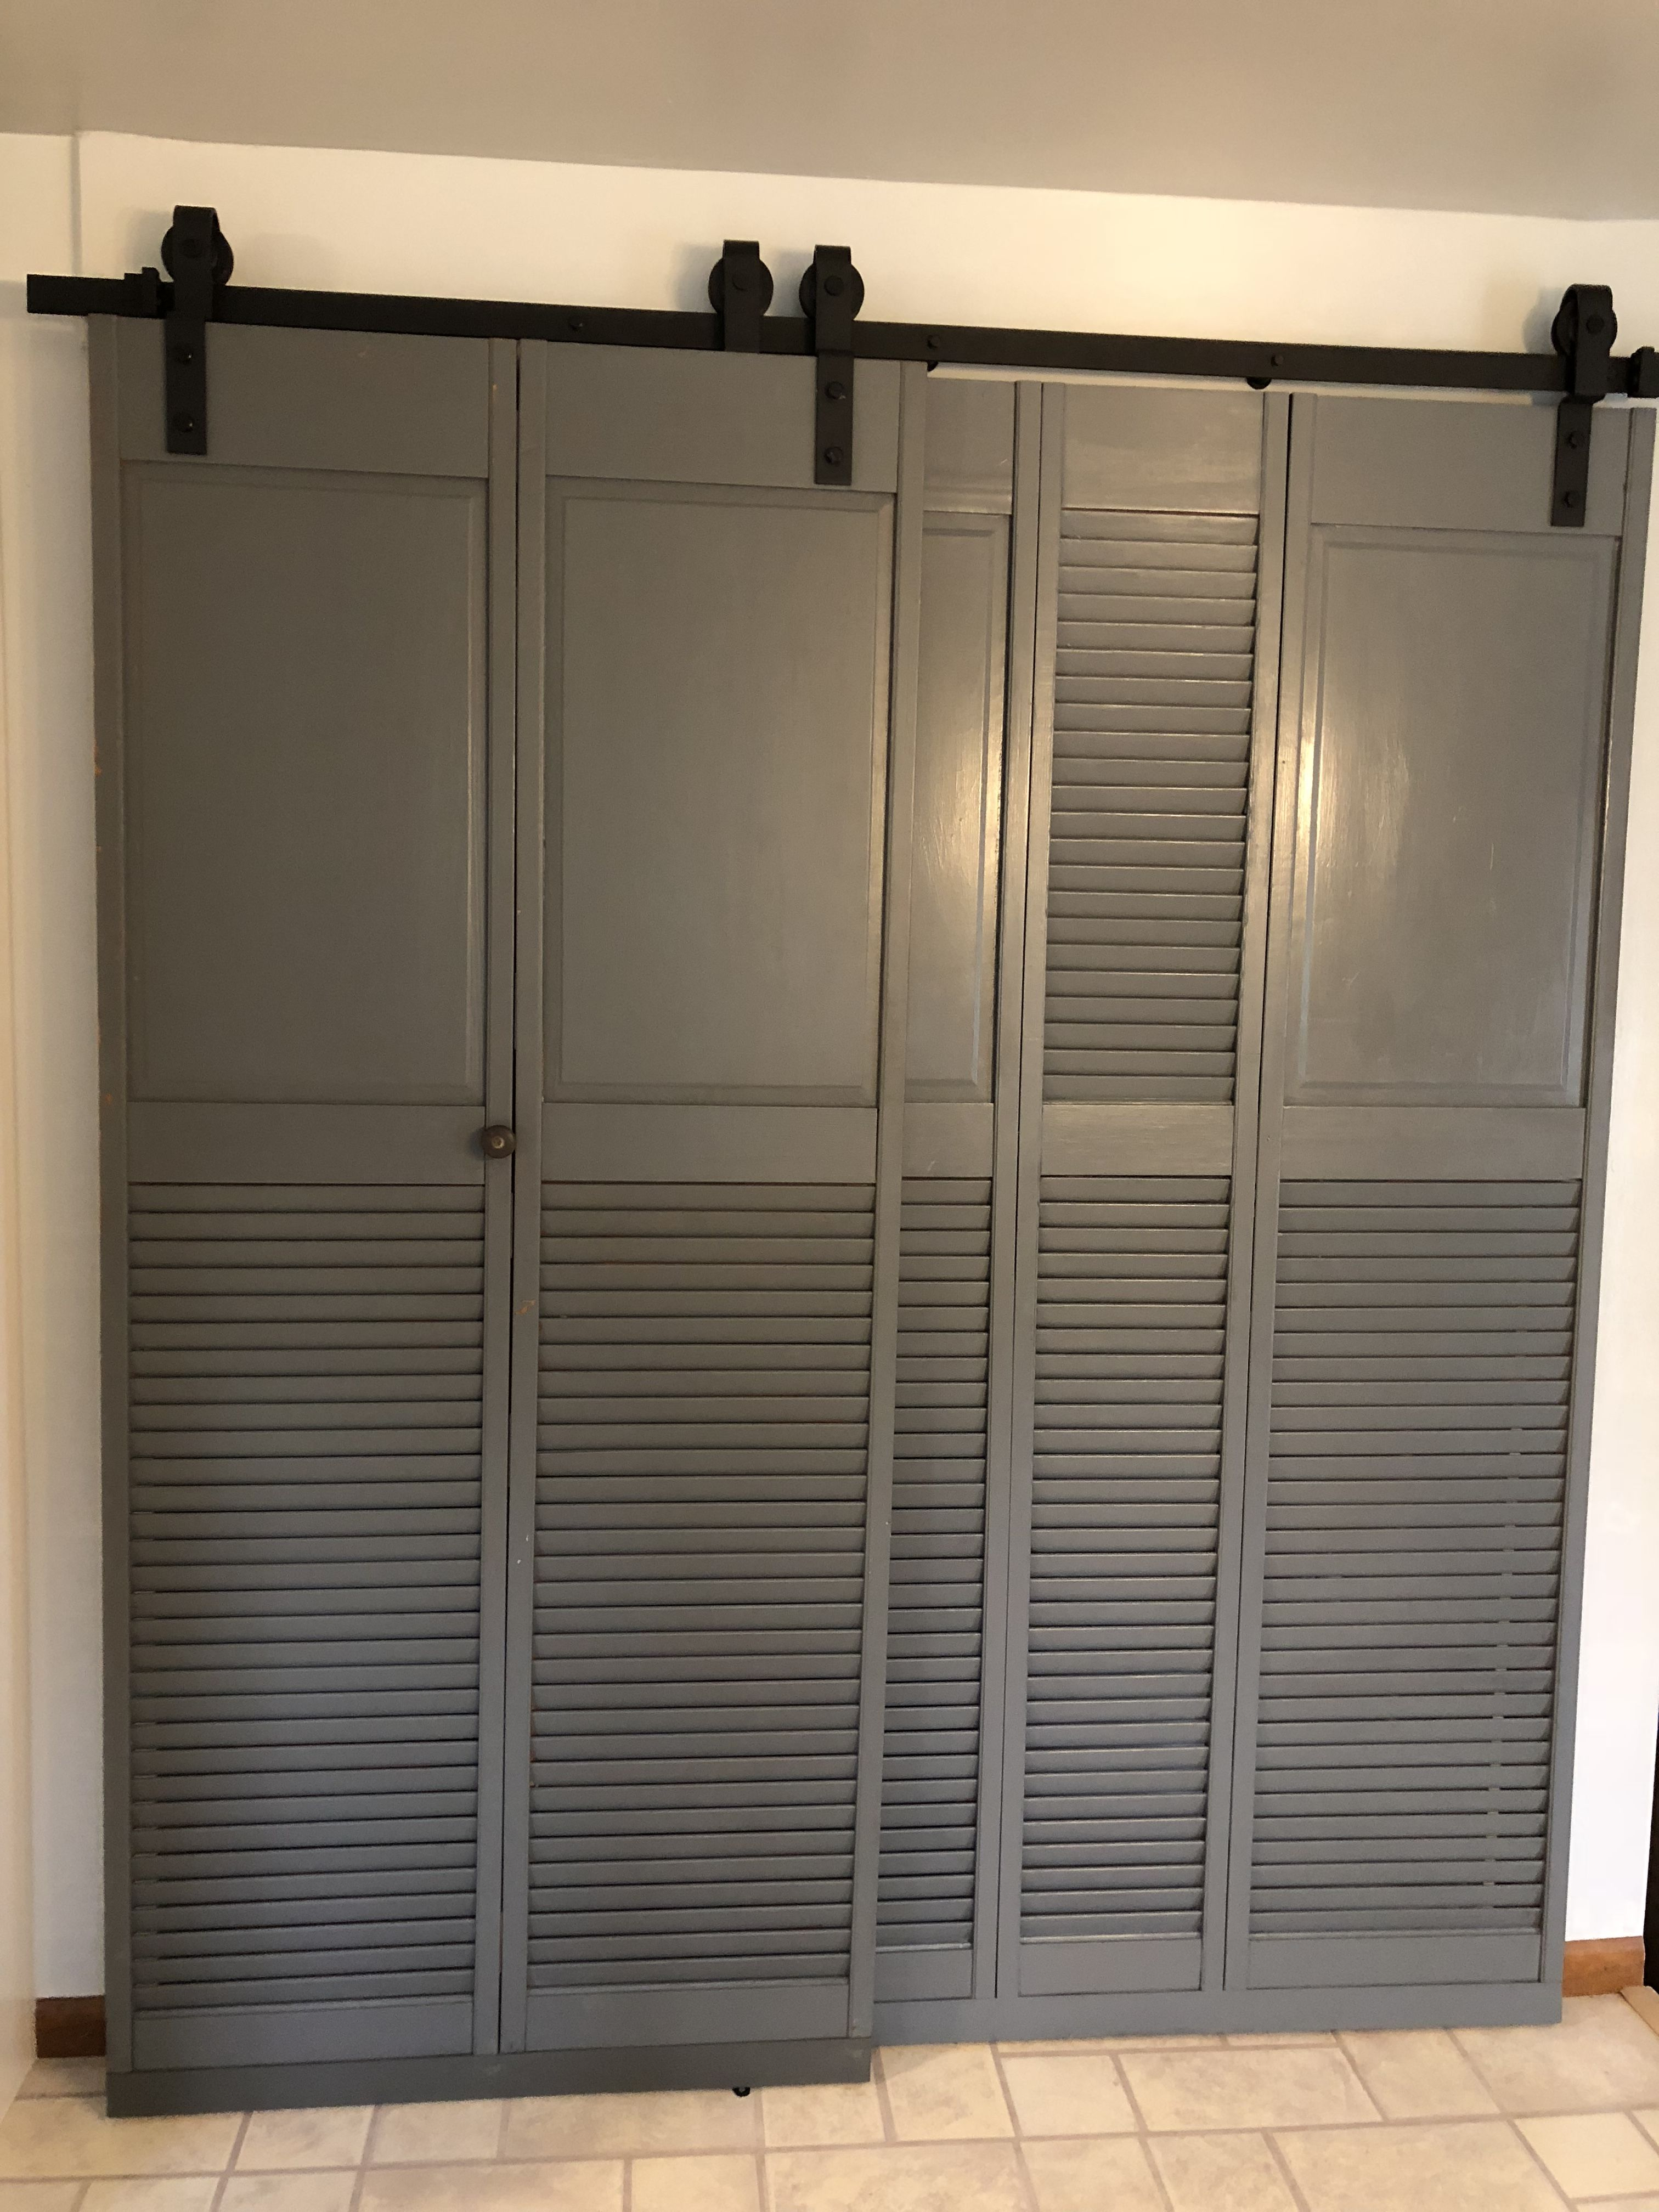 Barn Slider Doors Up Cycled Your Old Bifold Louvered Doors Into